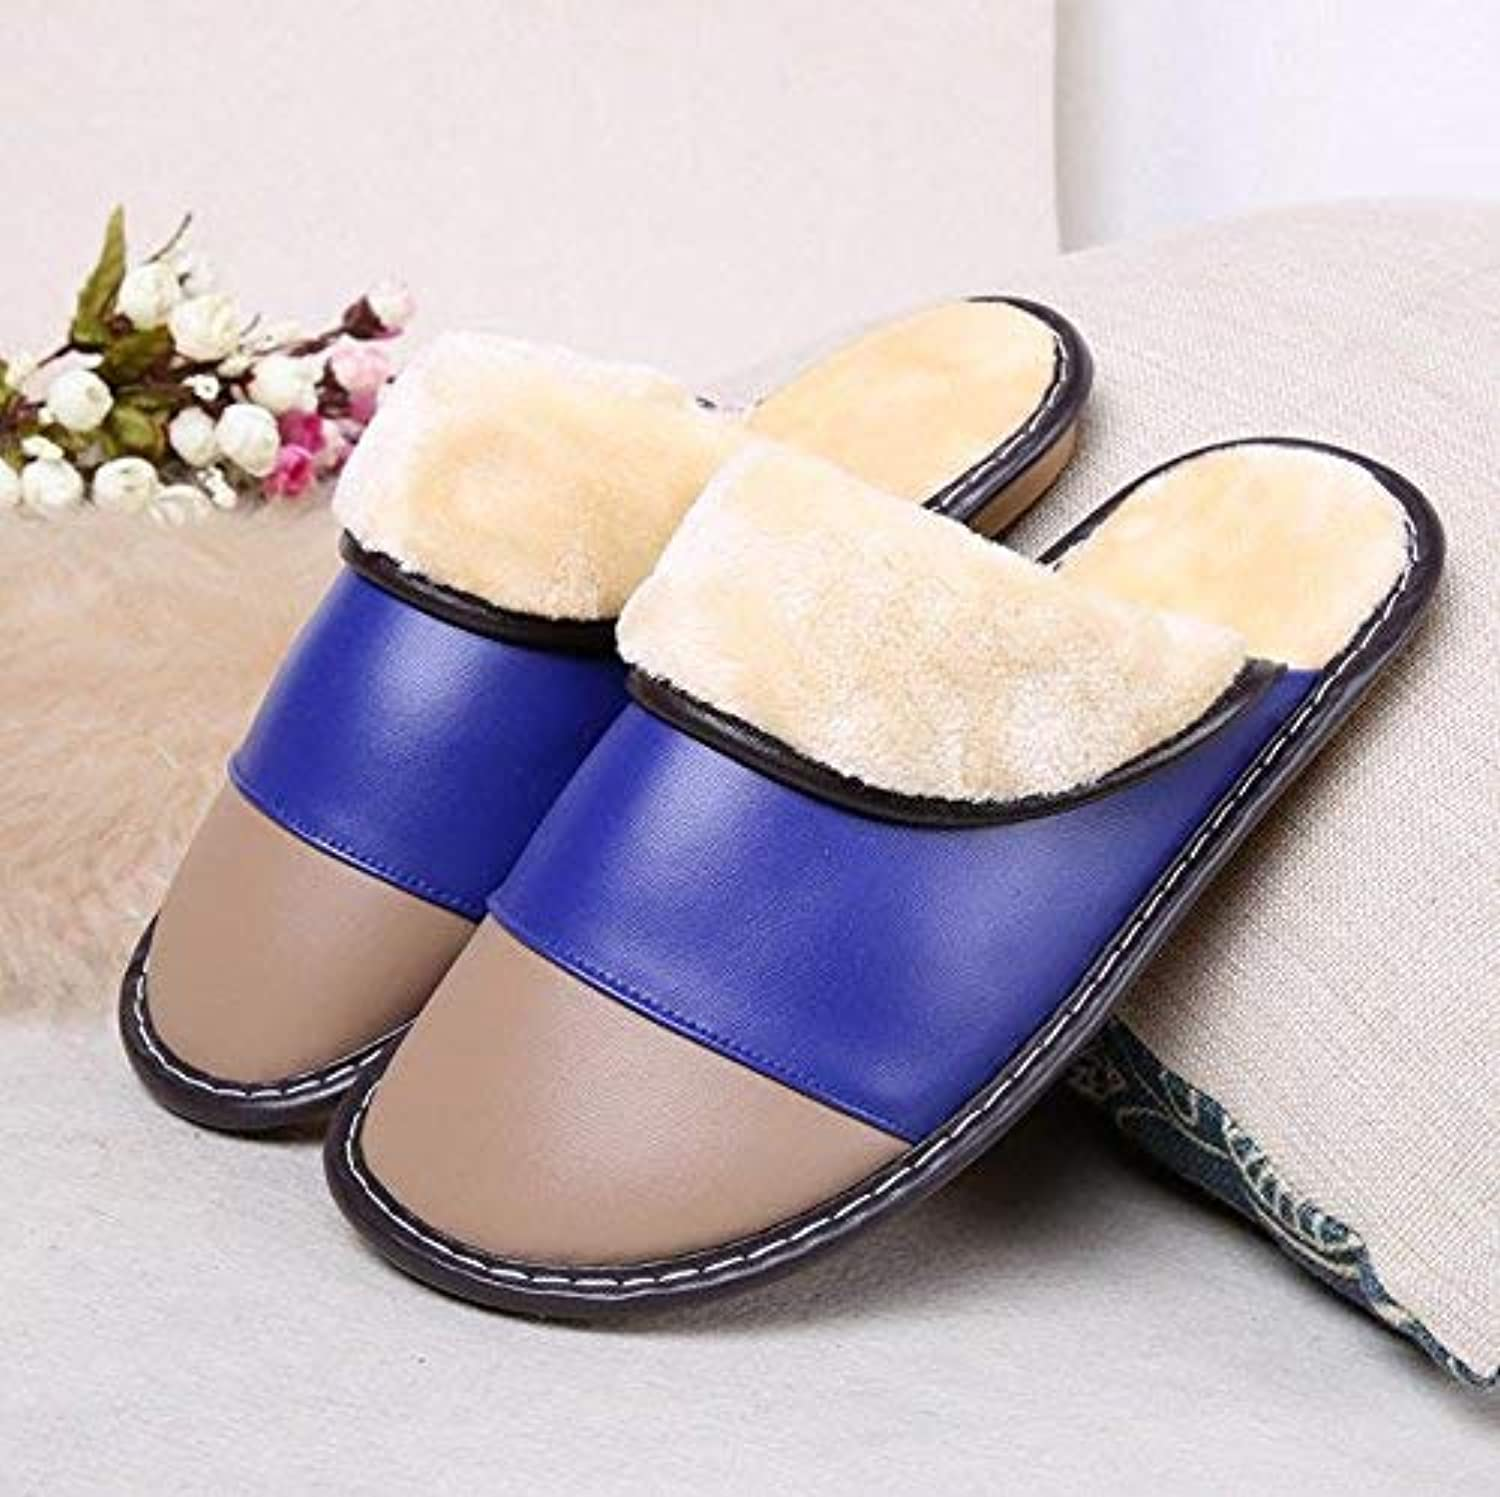 Men 's Home Leather Slippers Indoor Keep Warm Casual Slippers Mixed color bluee shoes Personality Quality for Men Large